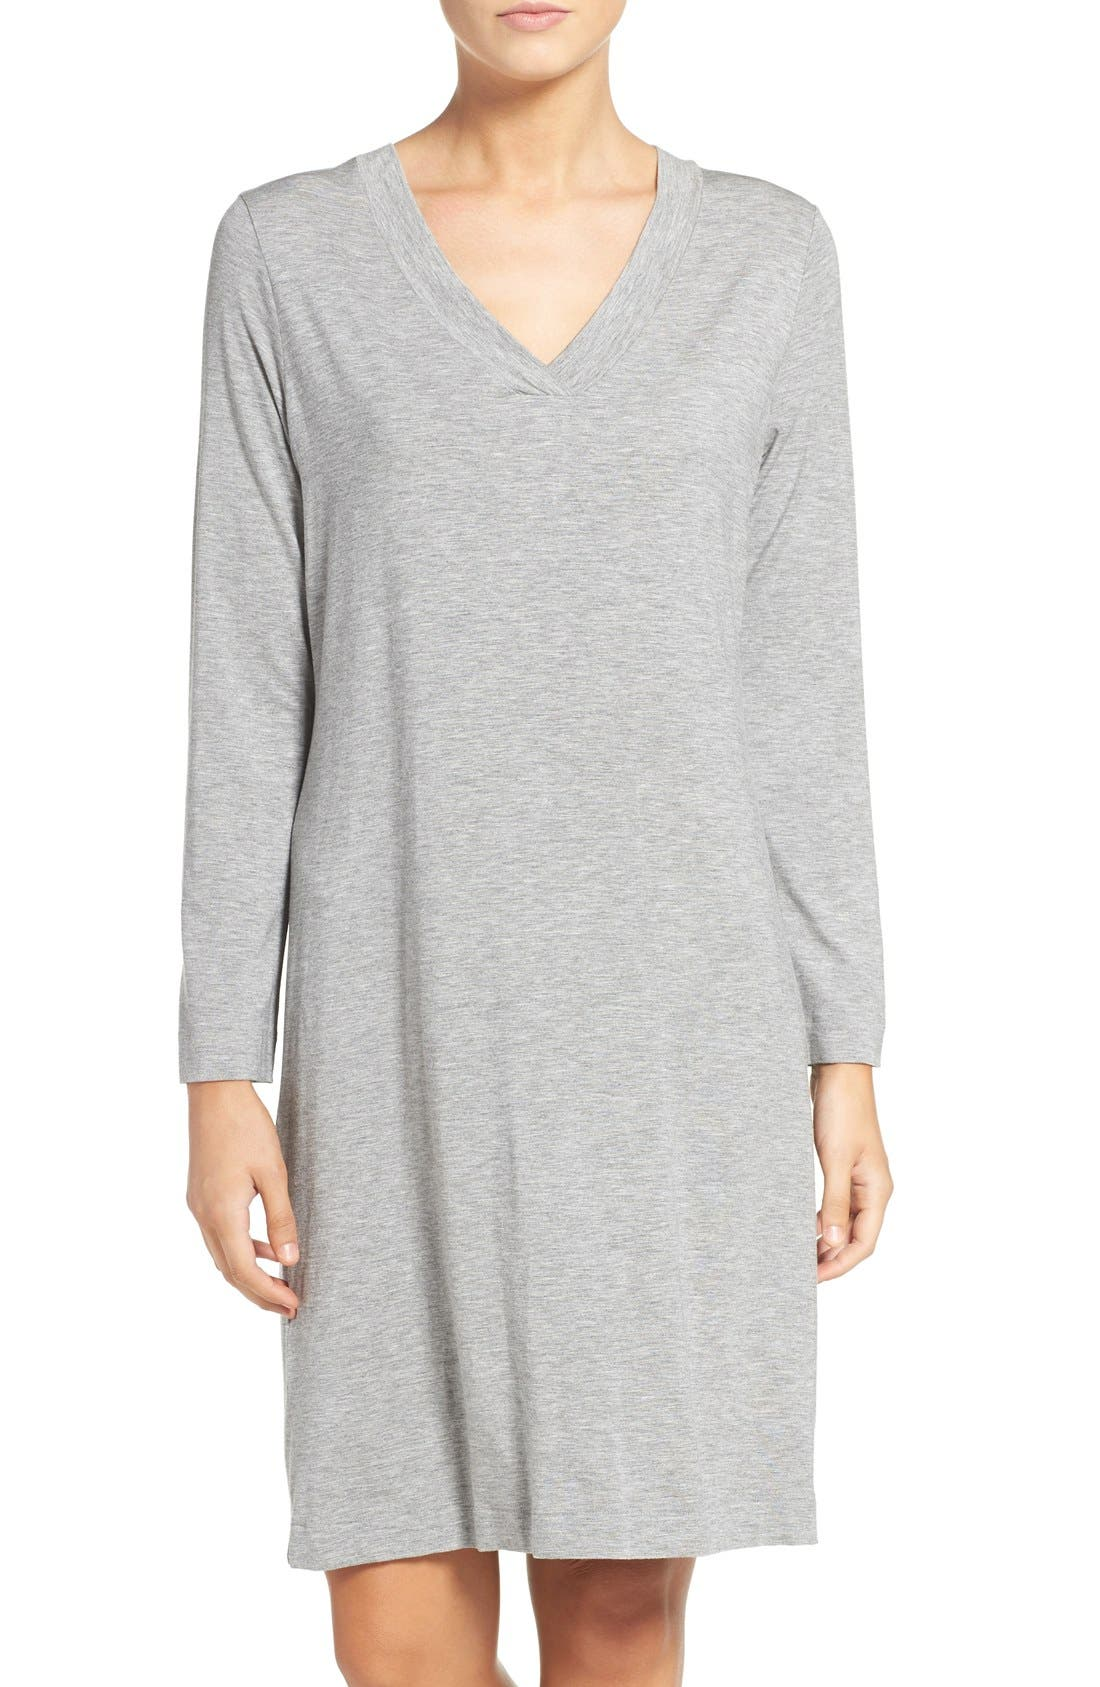 Long Sleeve Knit Nightgown,                         Main,                         color, Grey Melange 958